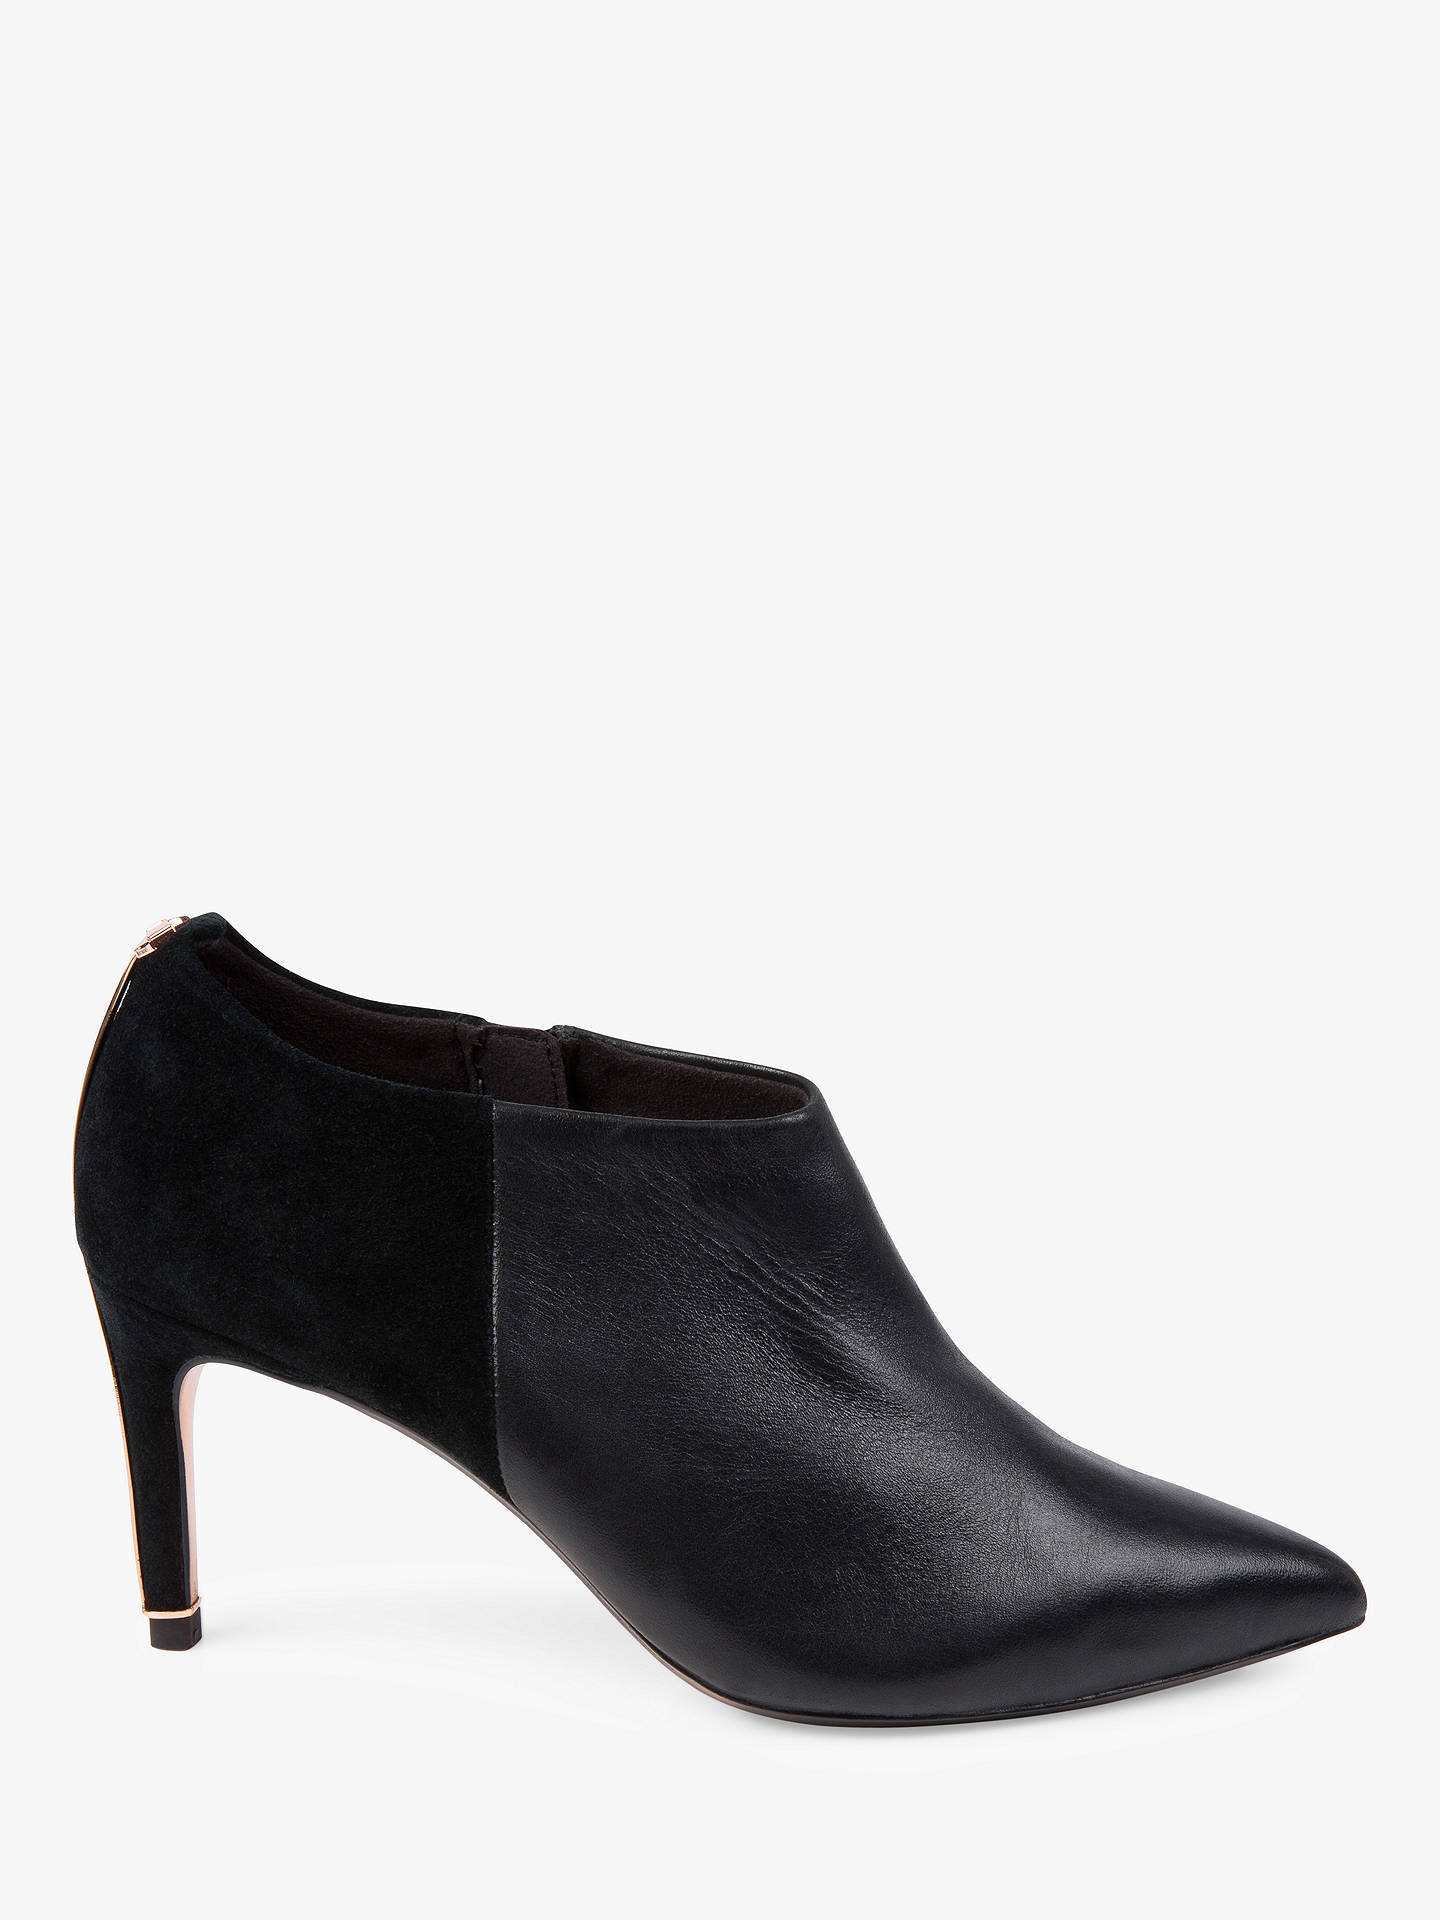 768998b5065 Buy Ted Baker Akasha Stiletto Heel Ankle Boots